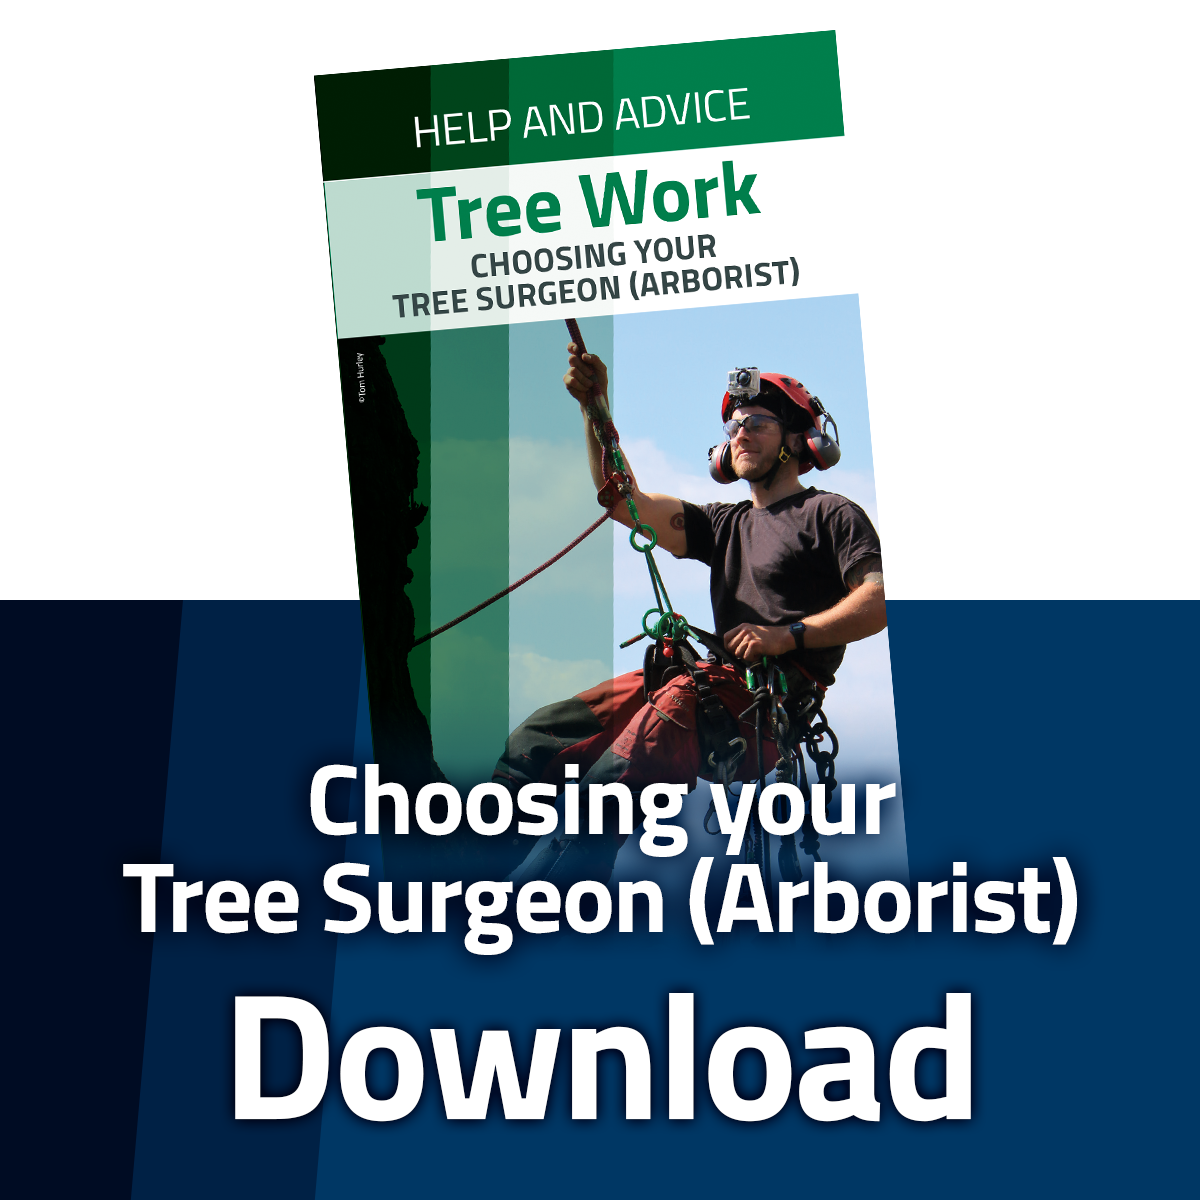 Download the Choosing Your Arborist Leaflet